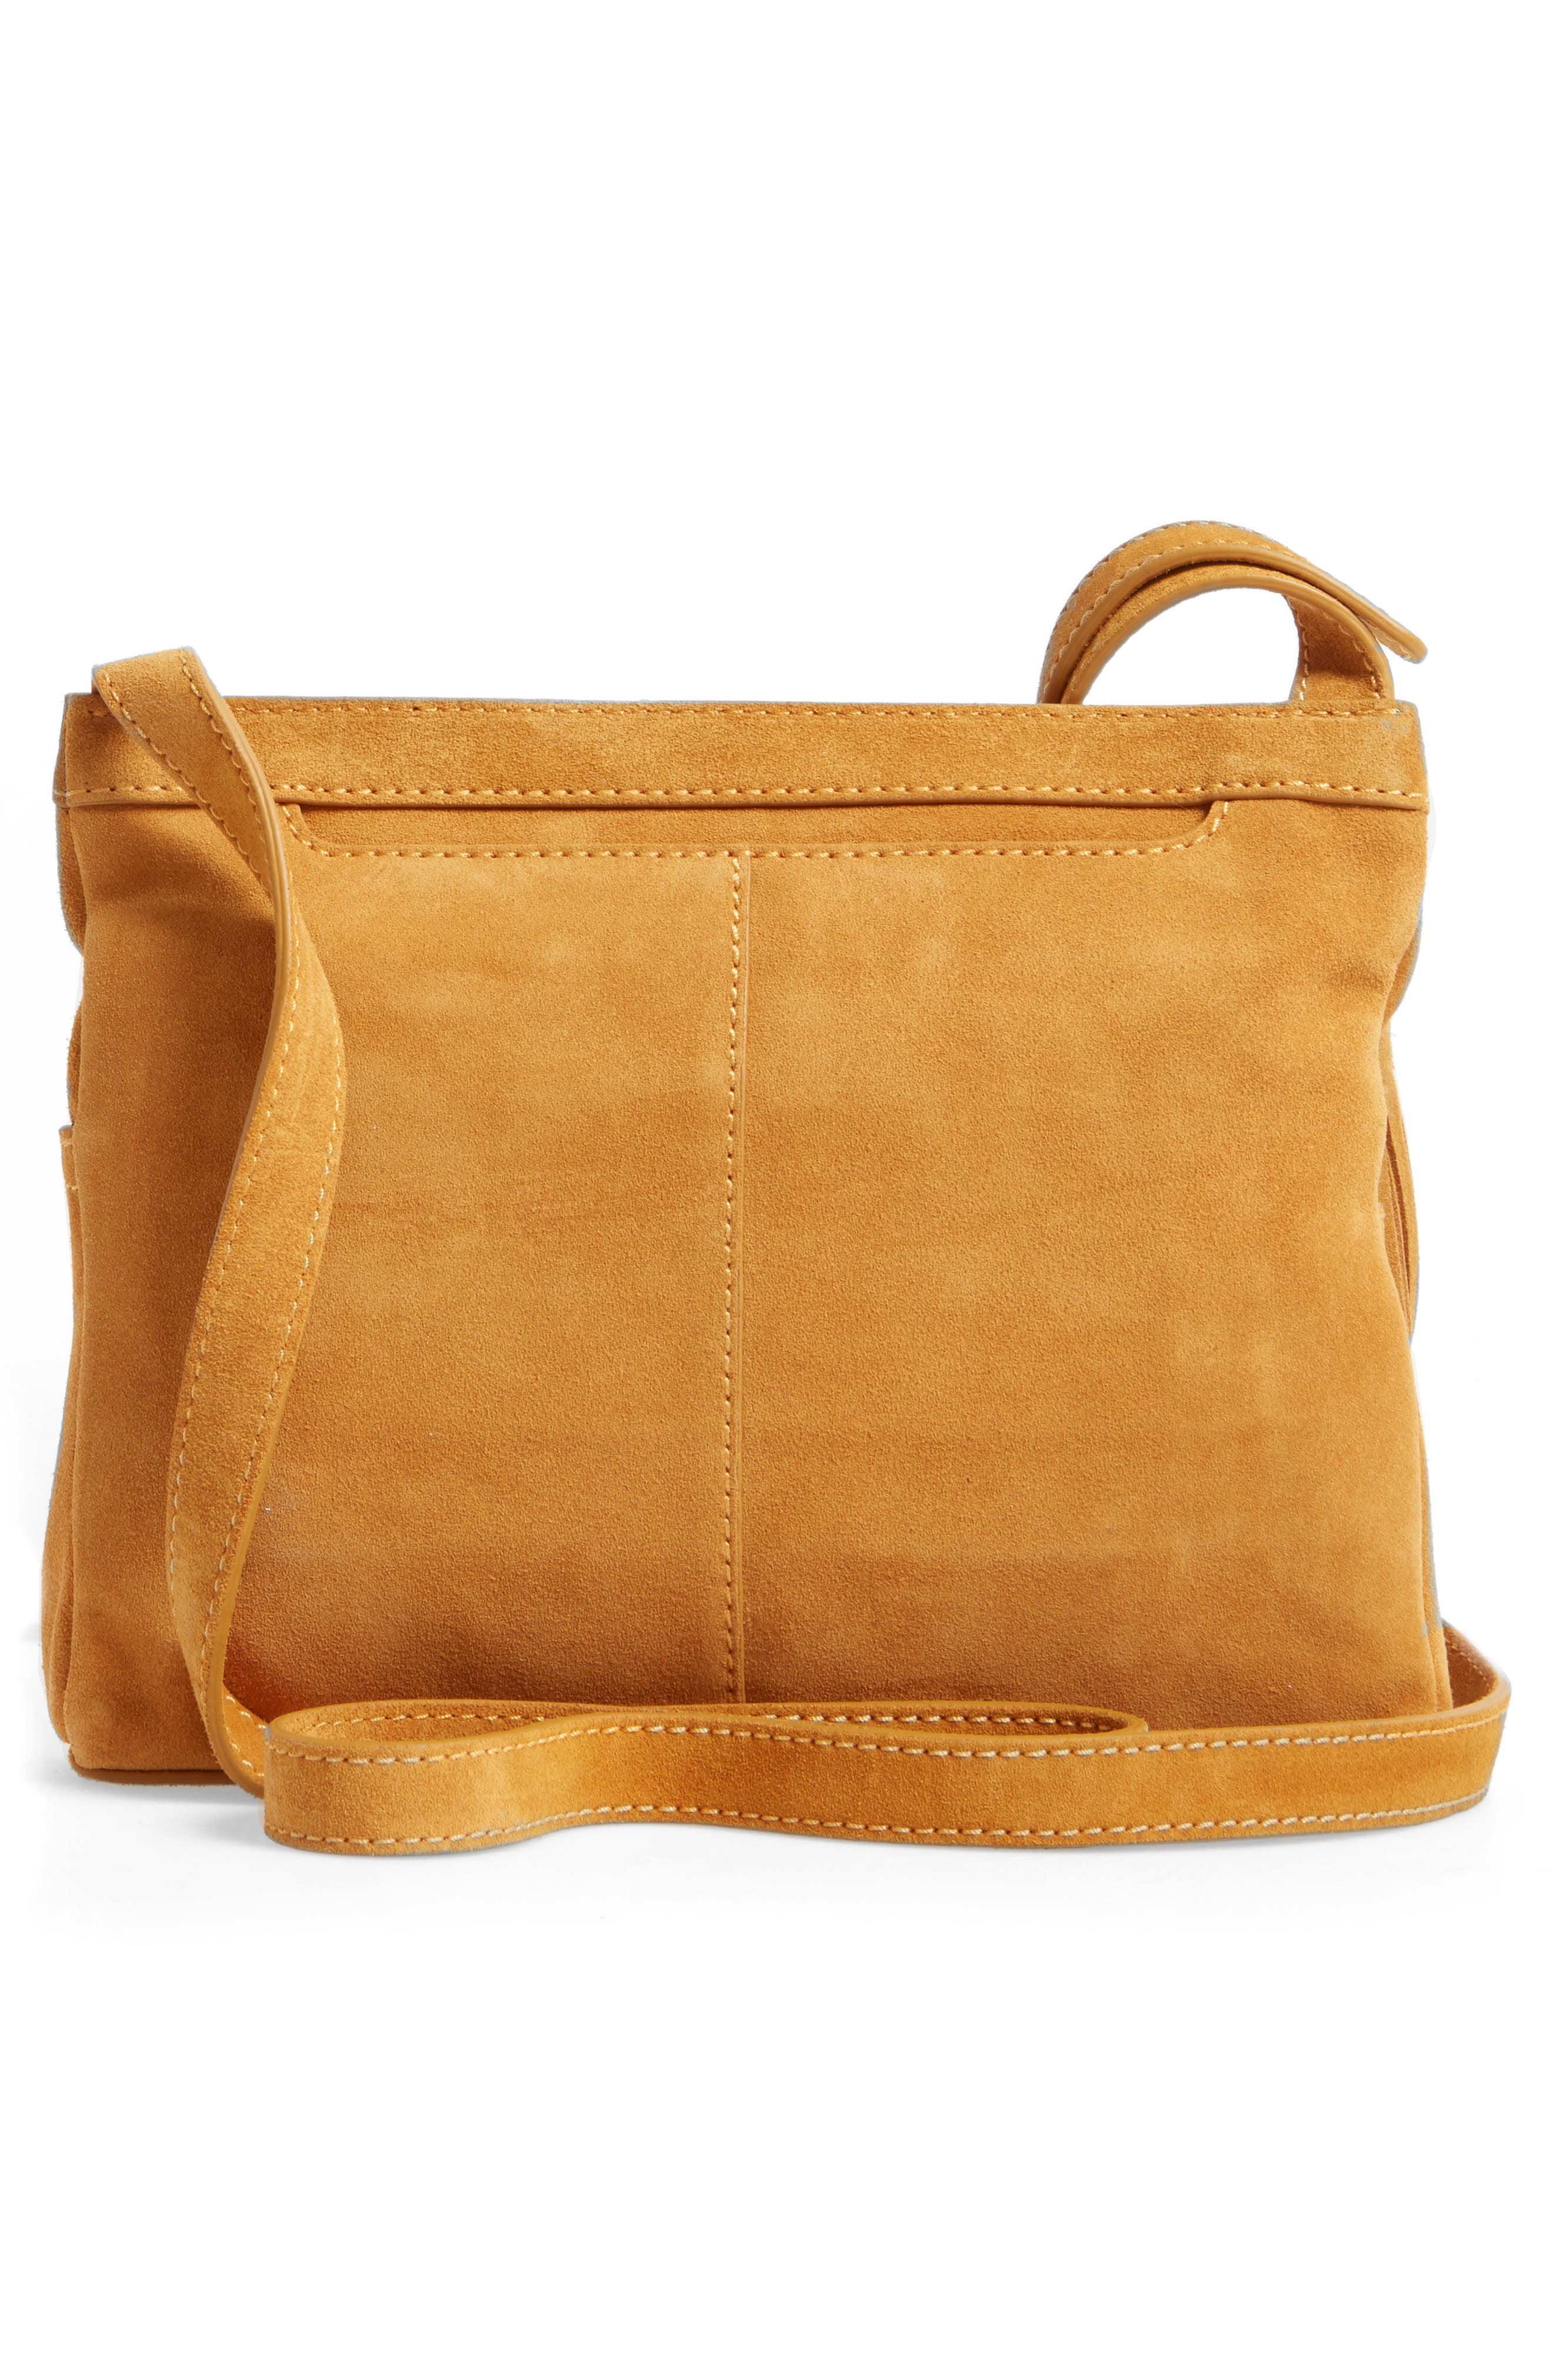 Alternate Image 3  - Hobo Cassie Calfskin Suede Crossbody Bag